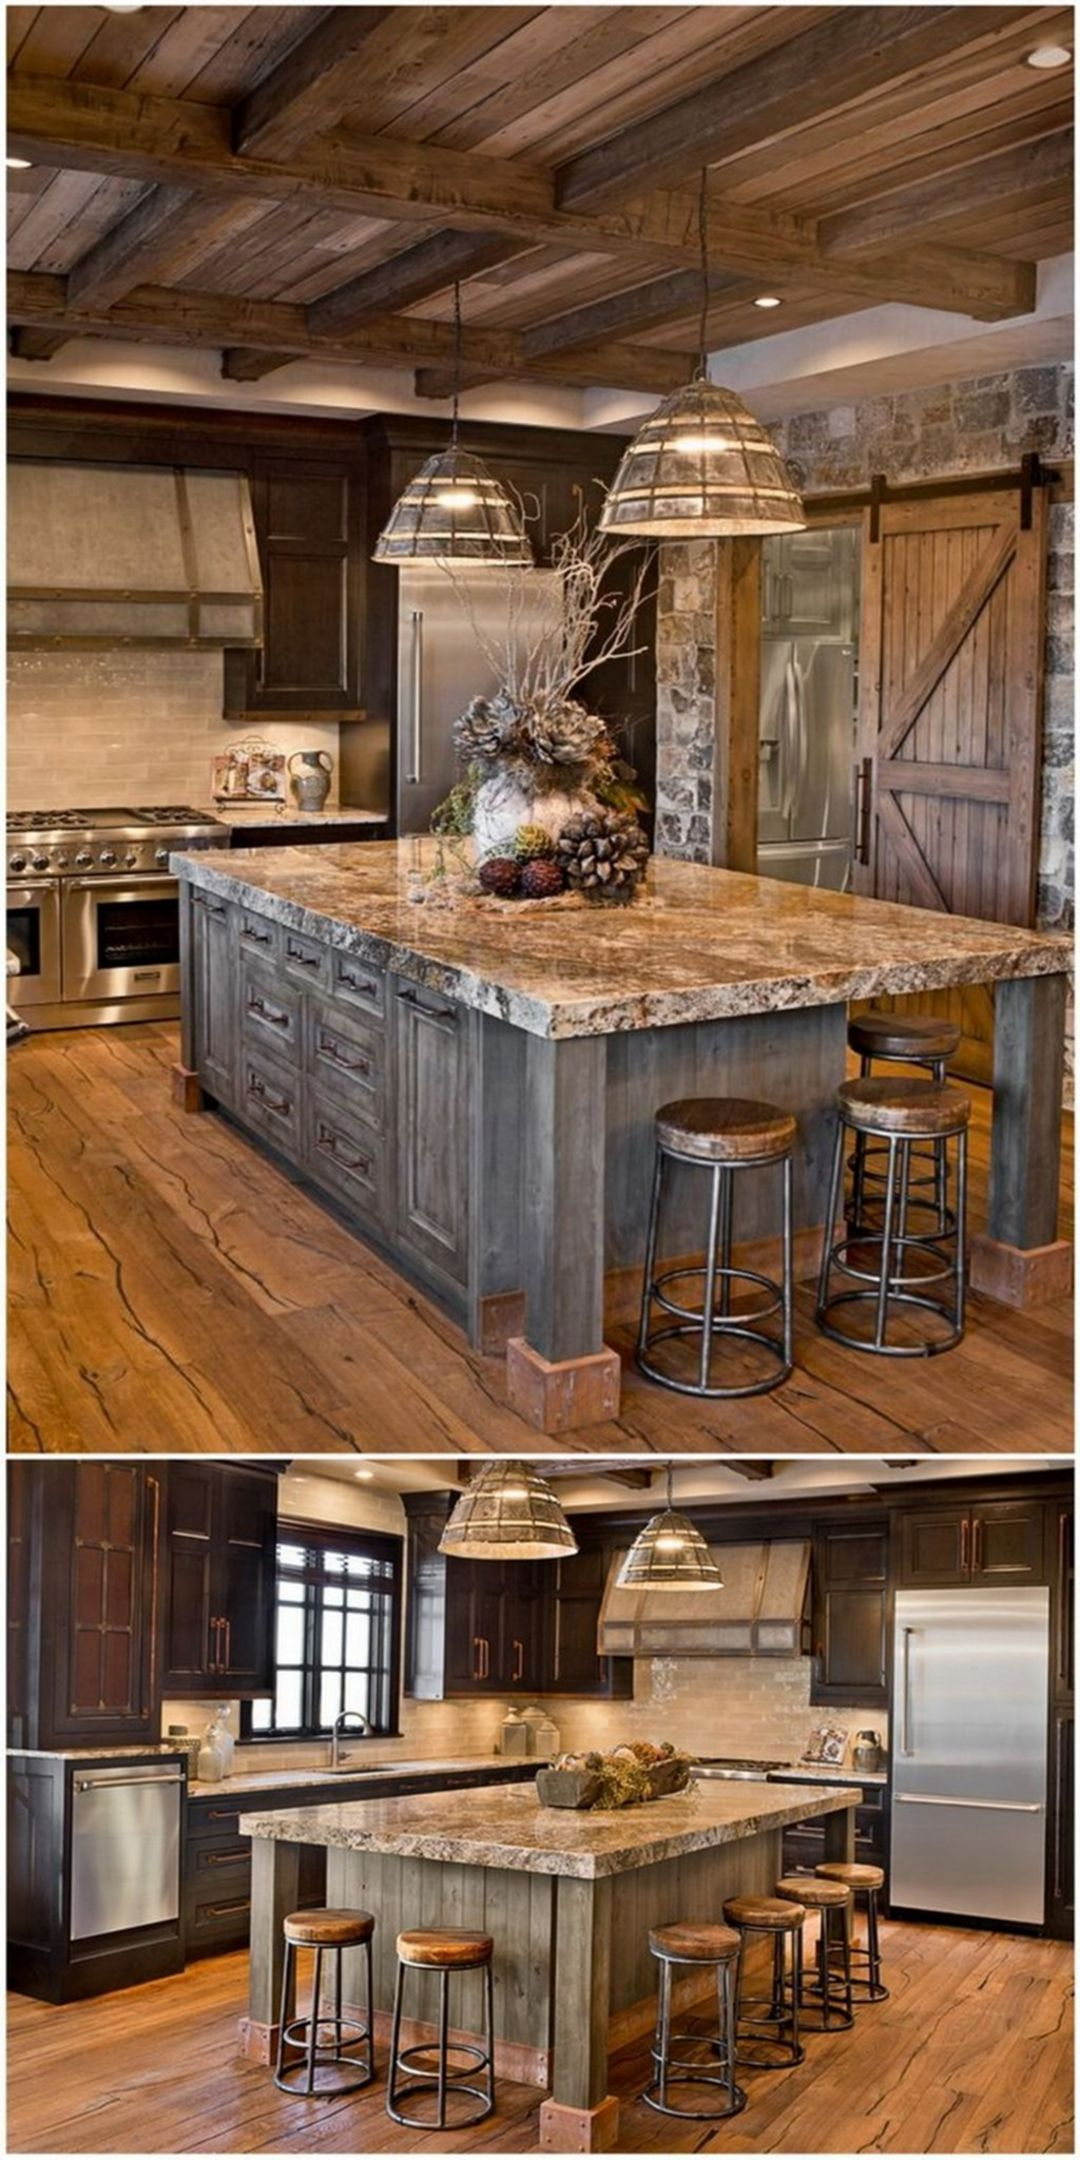 20 Charming Kitchen Cabinet Decorating Ideas for You Try images